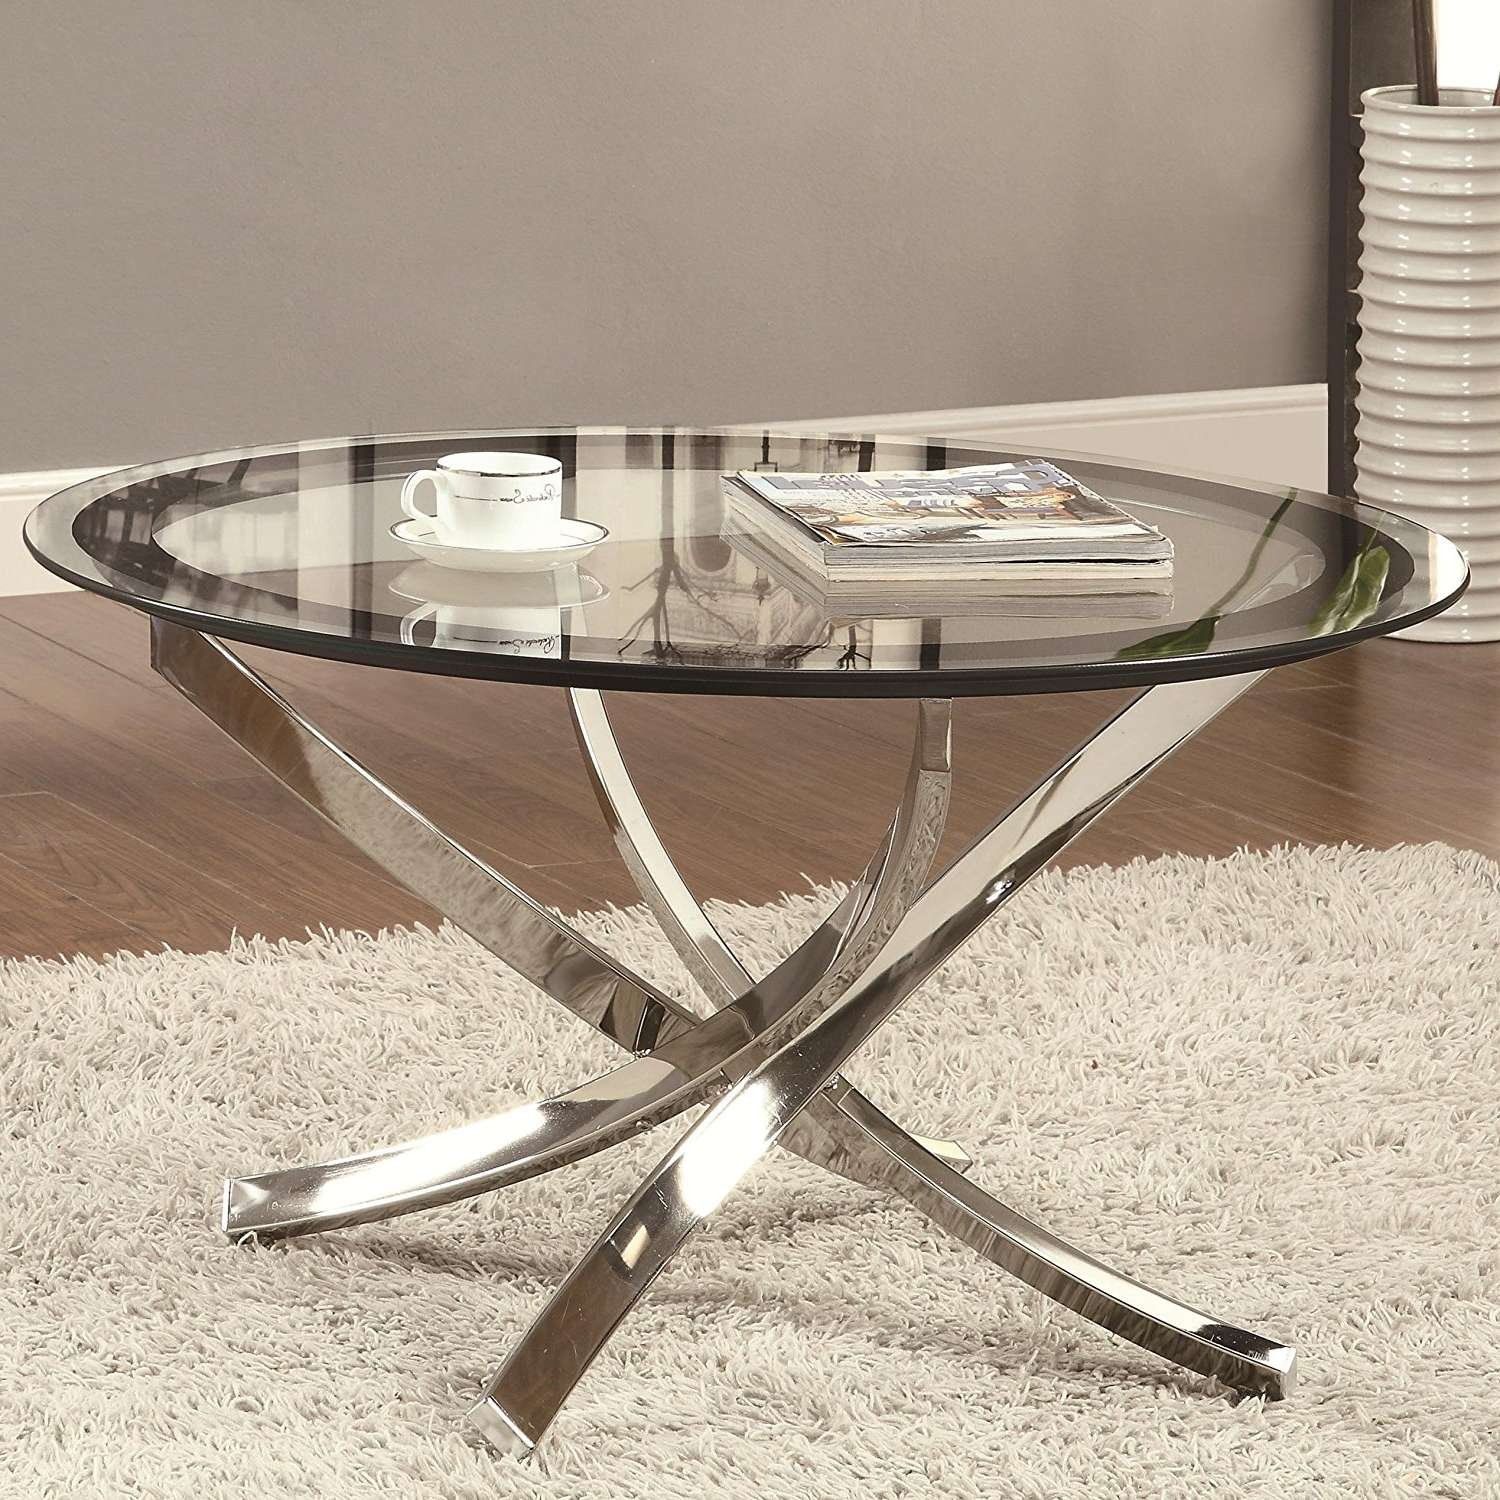 Chrome Coffee Table Base — All Furniture : Types Of Chrome Coffee Inside Most Recently Released Chrome Coffee Table Bases (View 4 of 20)